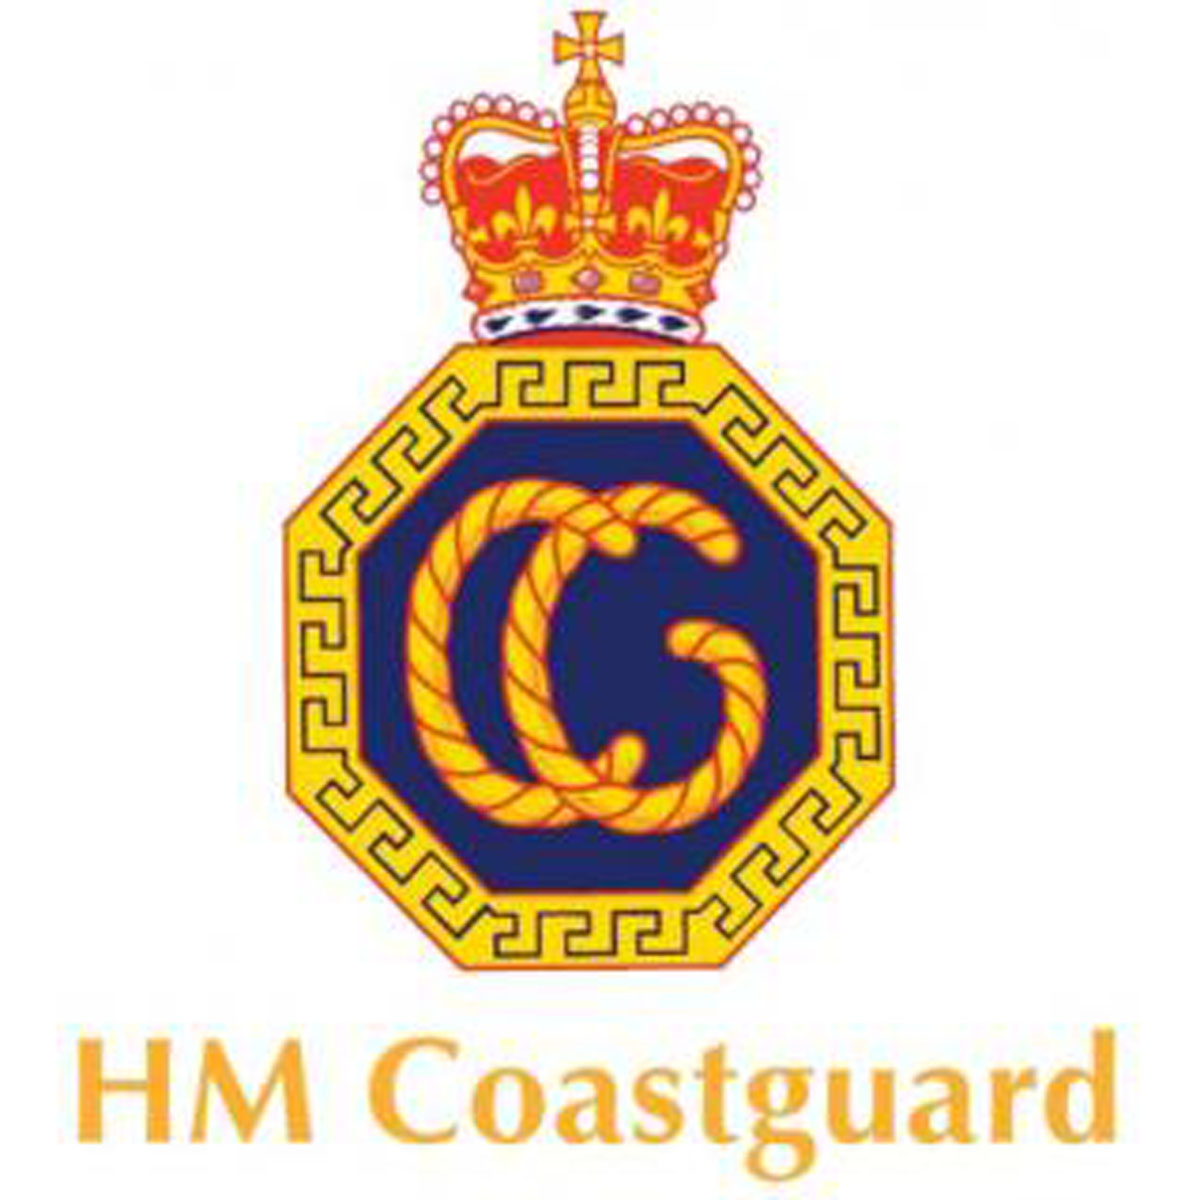 Coastguards called after dog falls off cliff